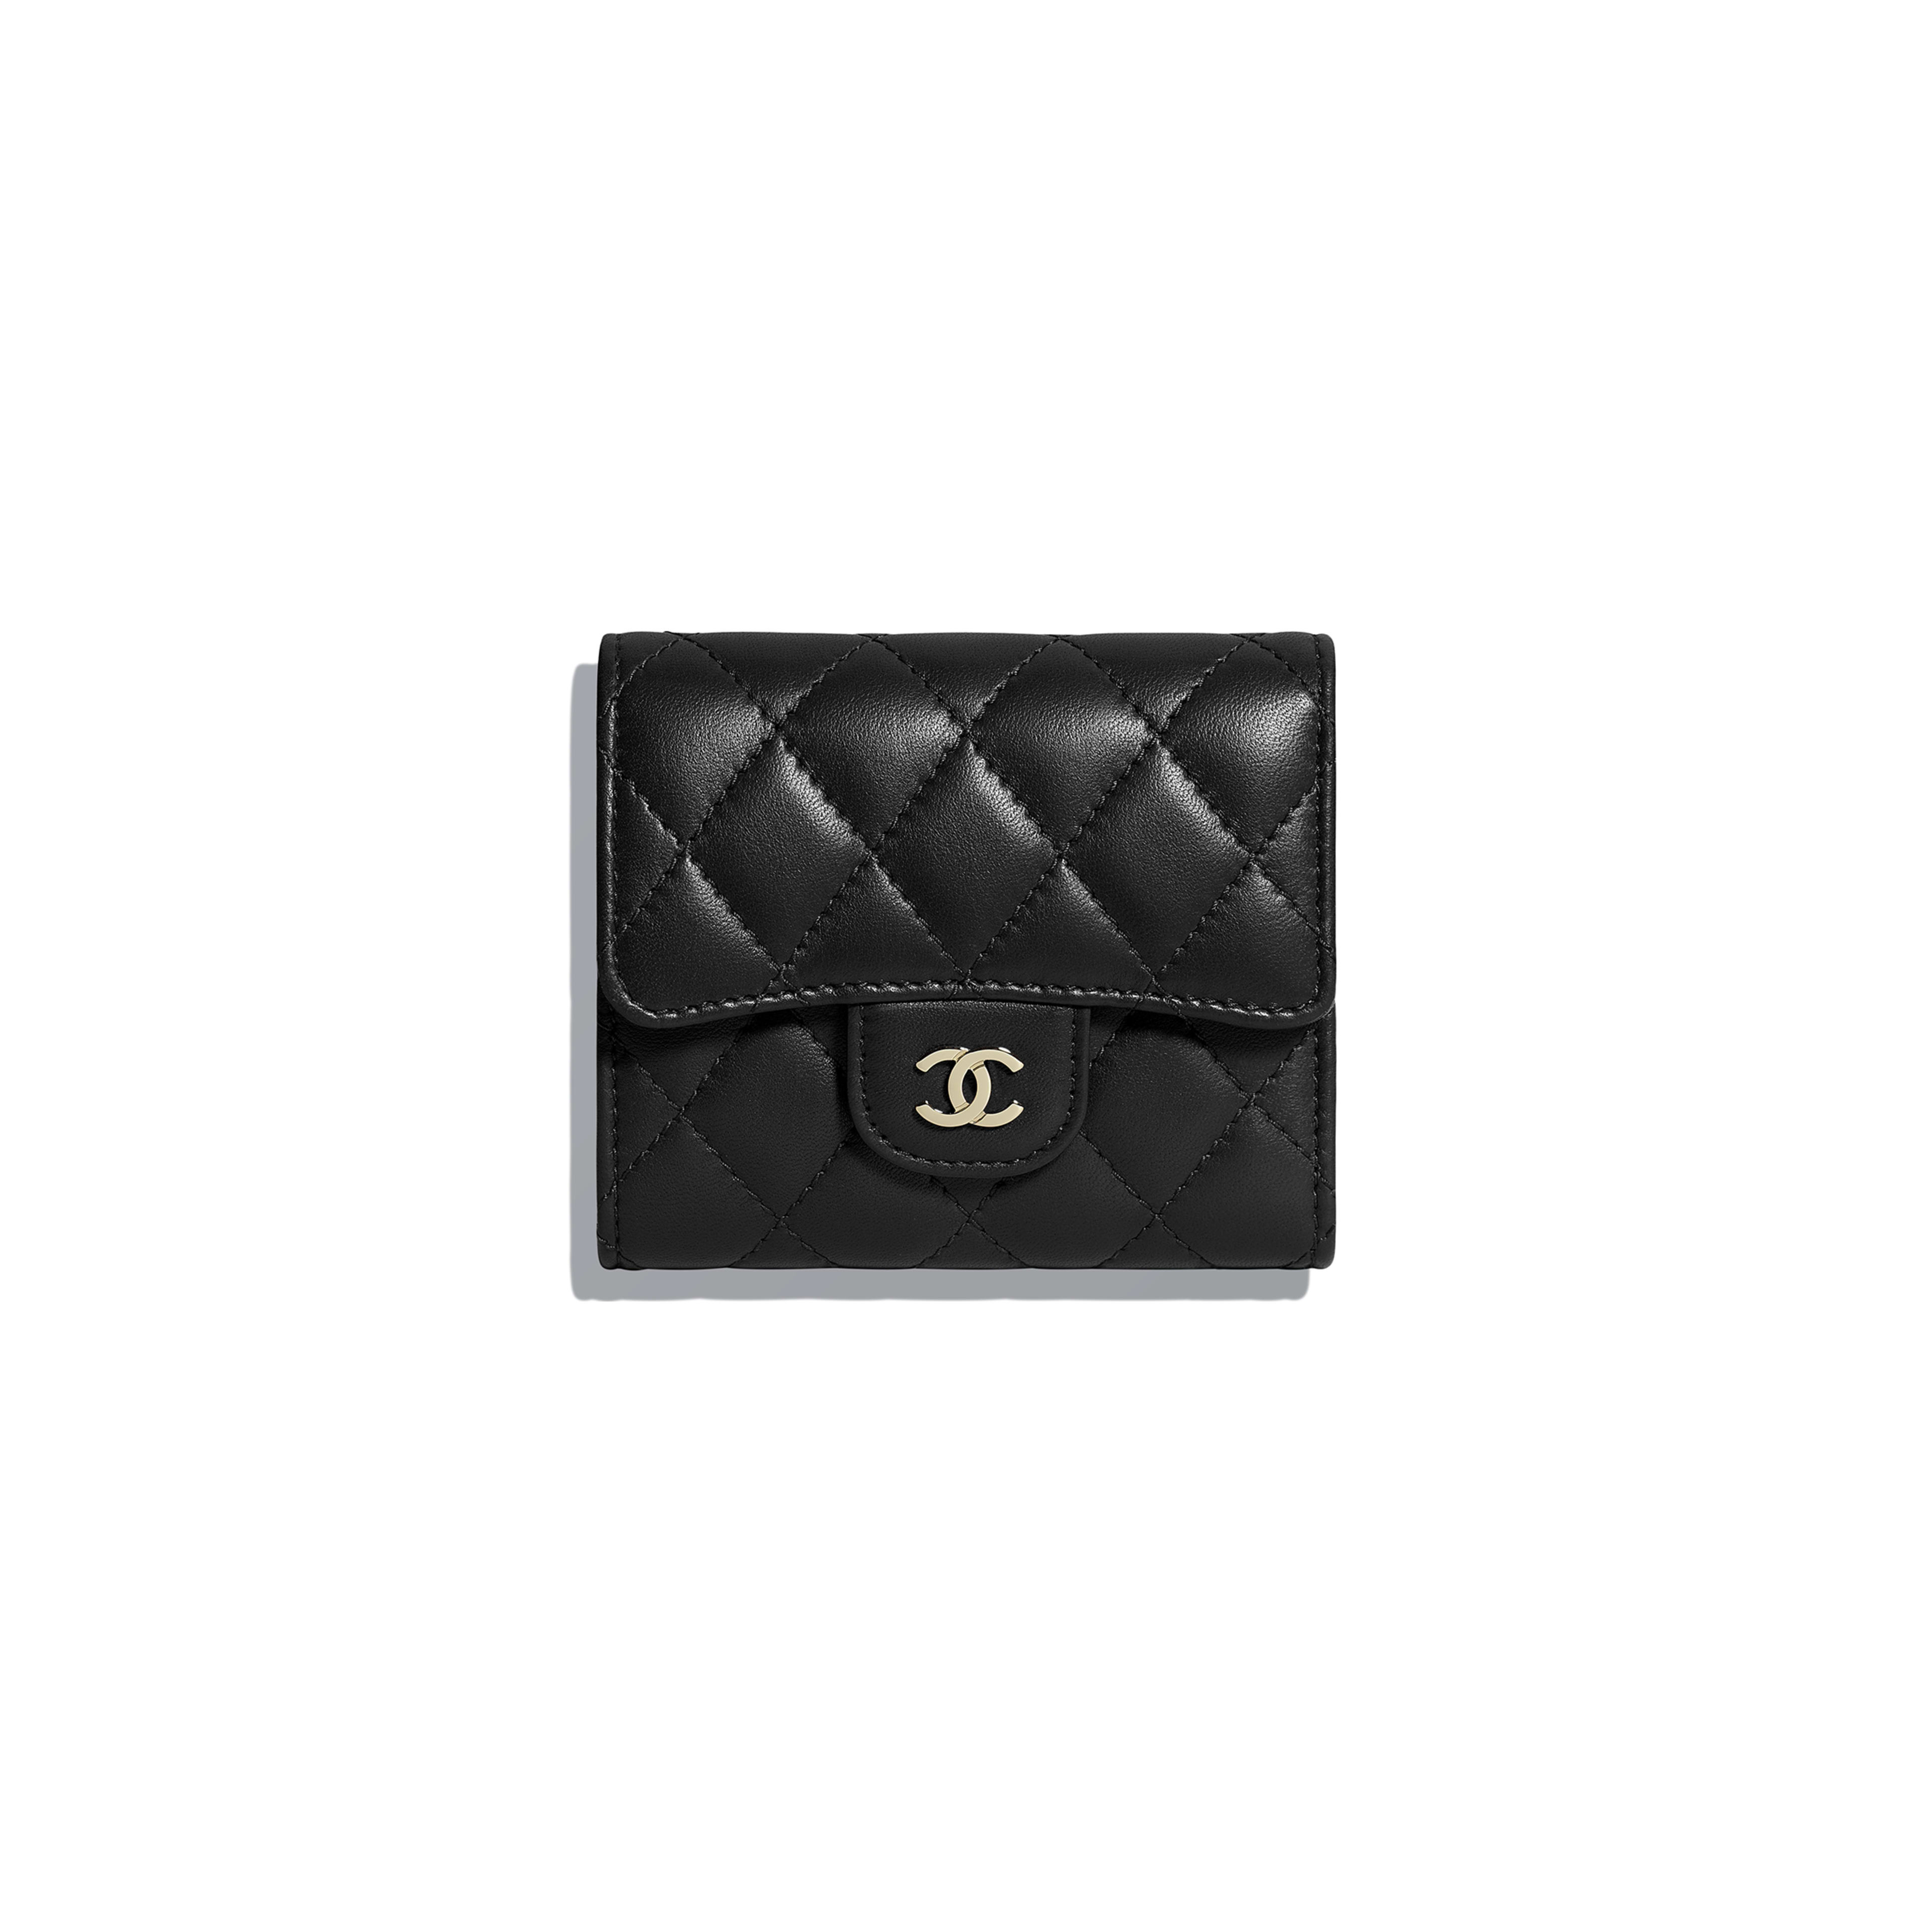 Classic Small Flap Wallet - Black - Lambskin - Default view - see full sized version